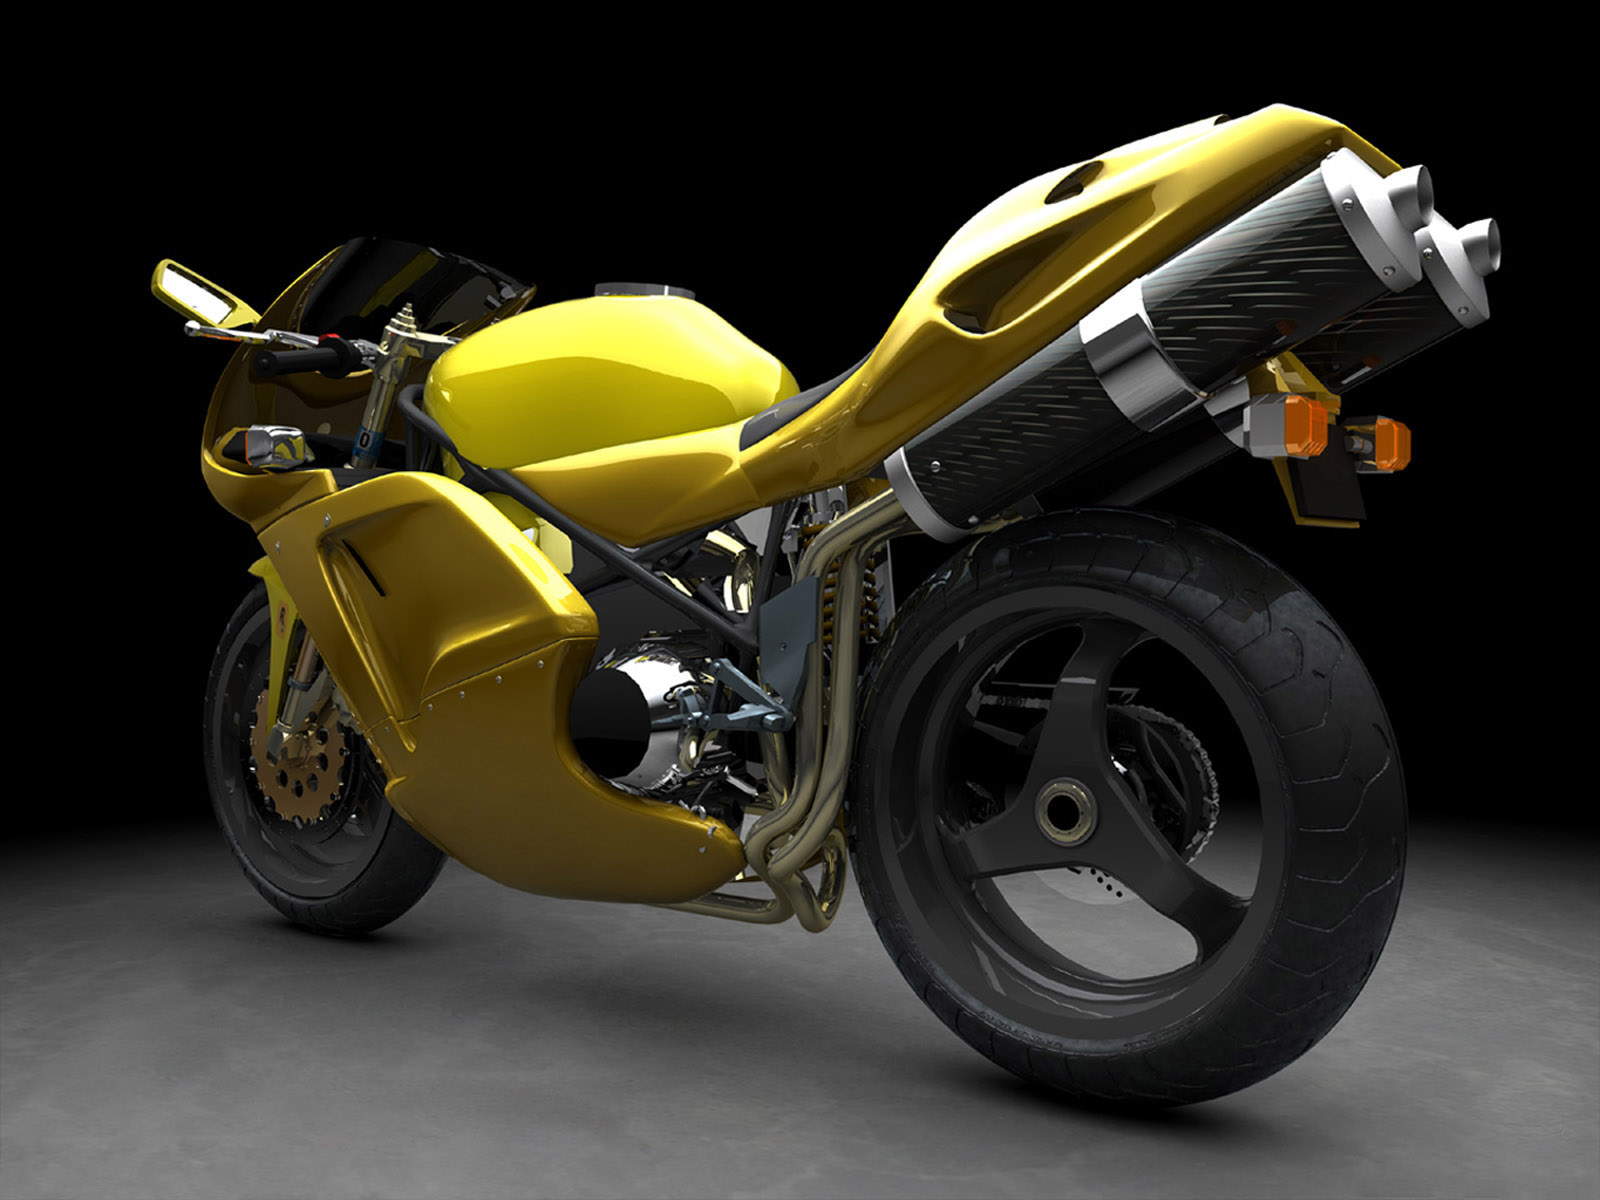 http://2.bp.blogspot.com/-8C3NdrgjVWc/TaN22Ay09tI/AAAAAAAABVQ/P7iz8ElenCs/s1600/yellow-sports-bike-wallpapers_12042_1600x1200.jpg